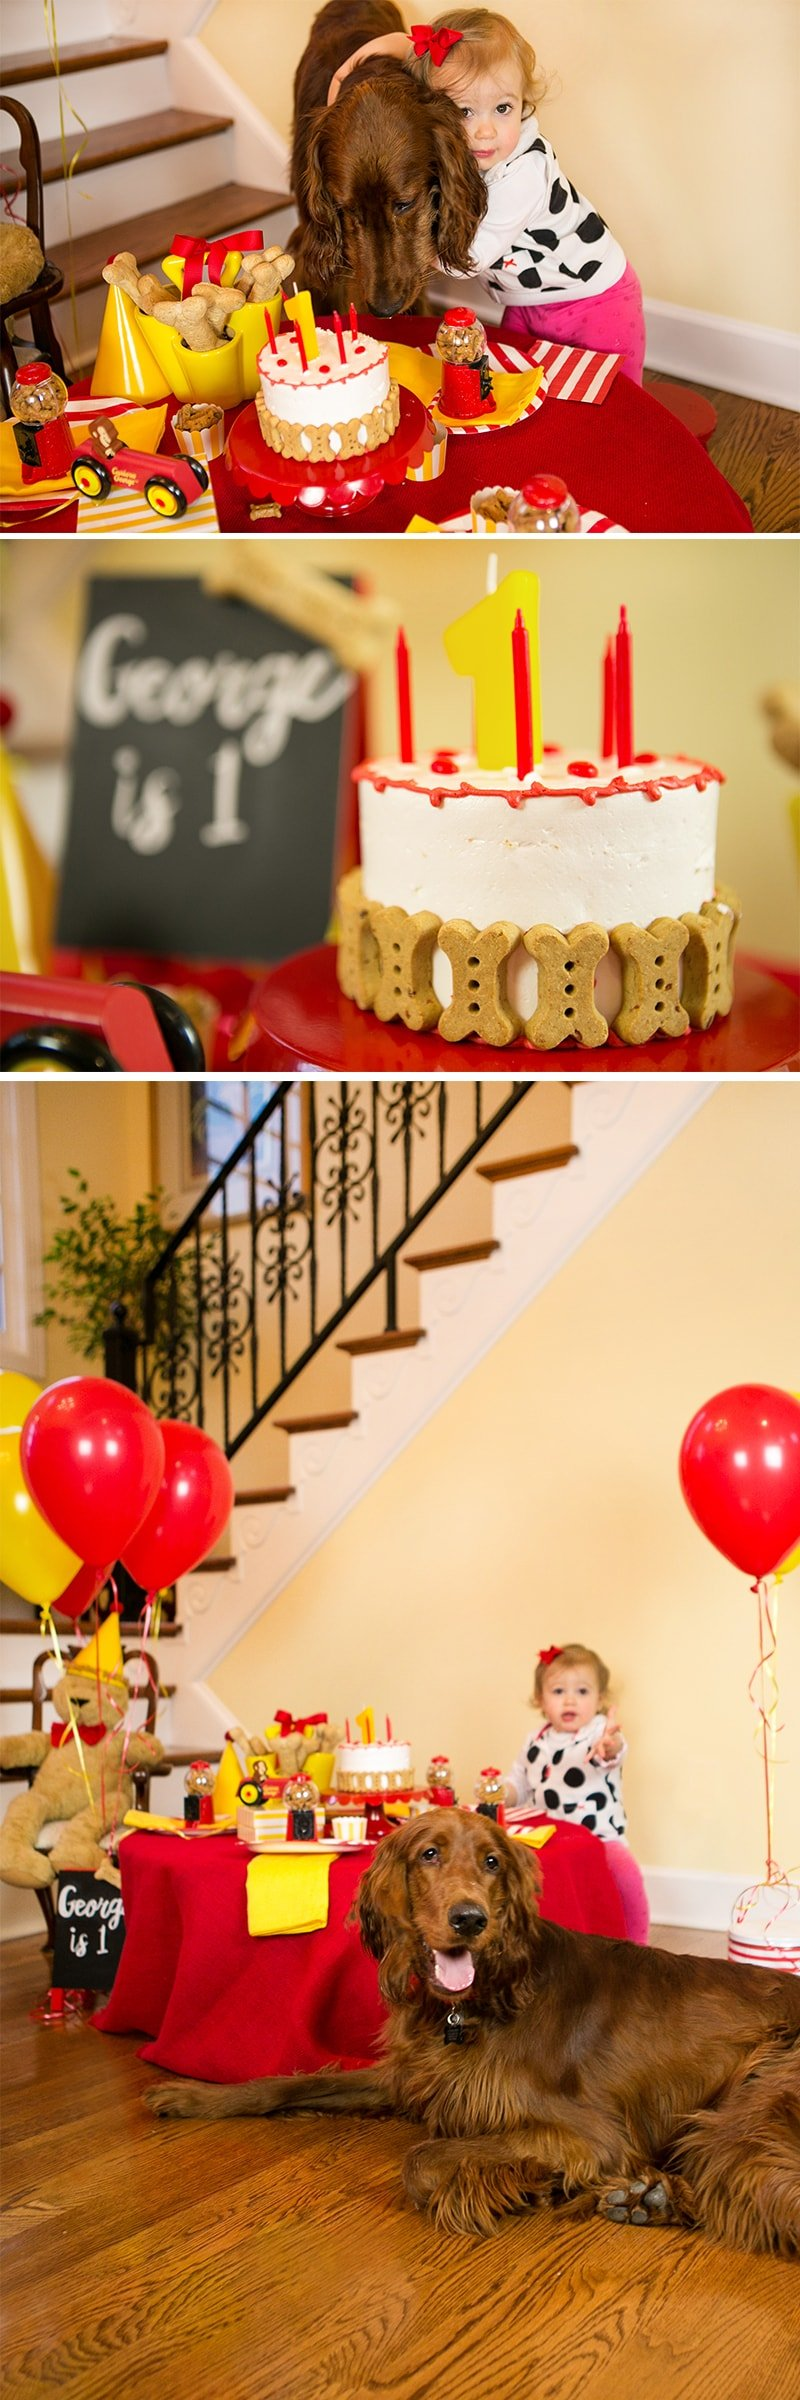 Cute Puppy Birthday Pawty ideas!